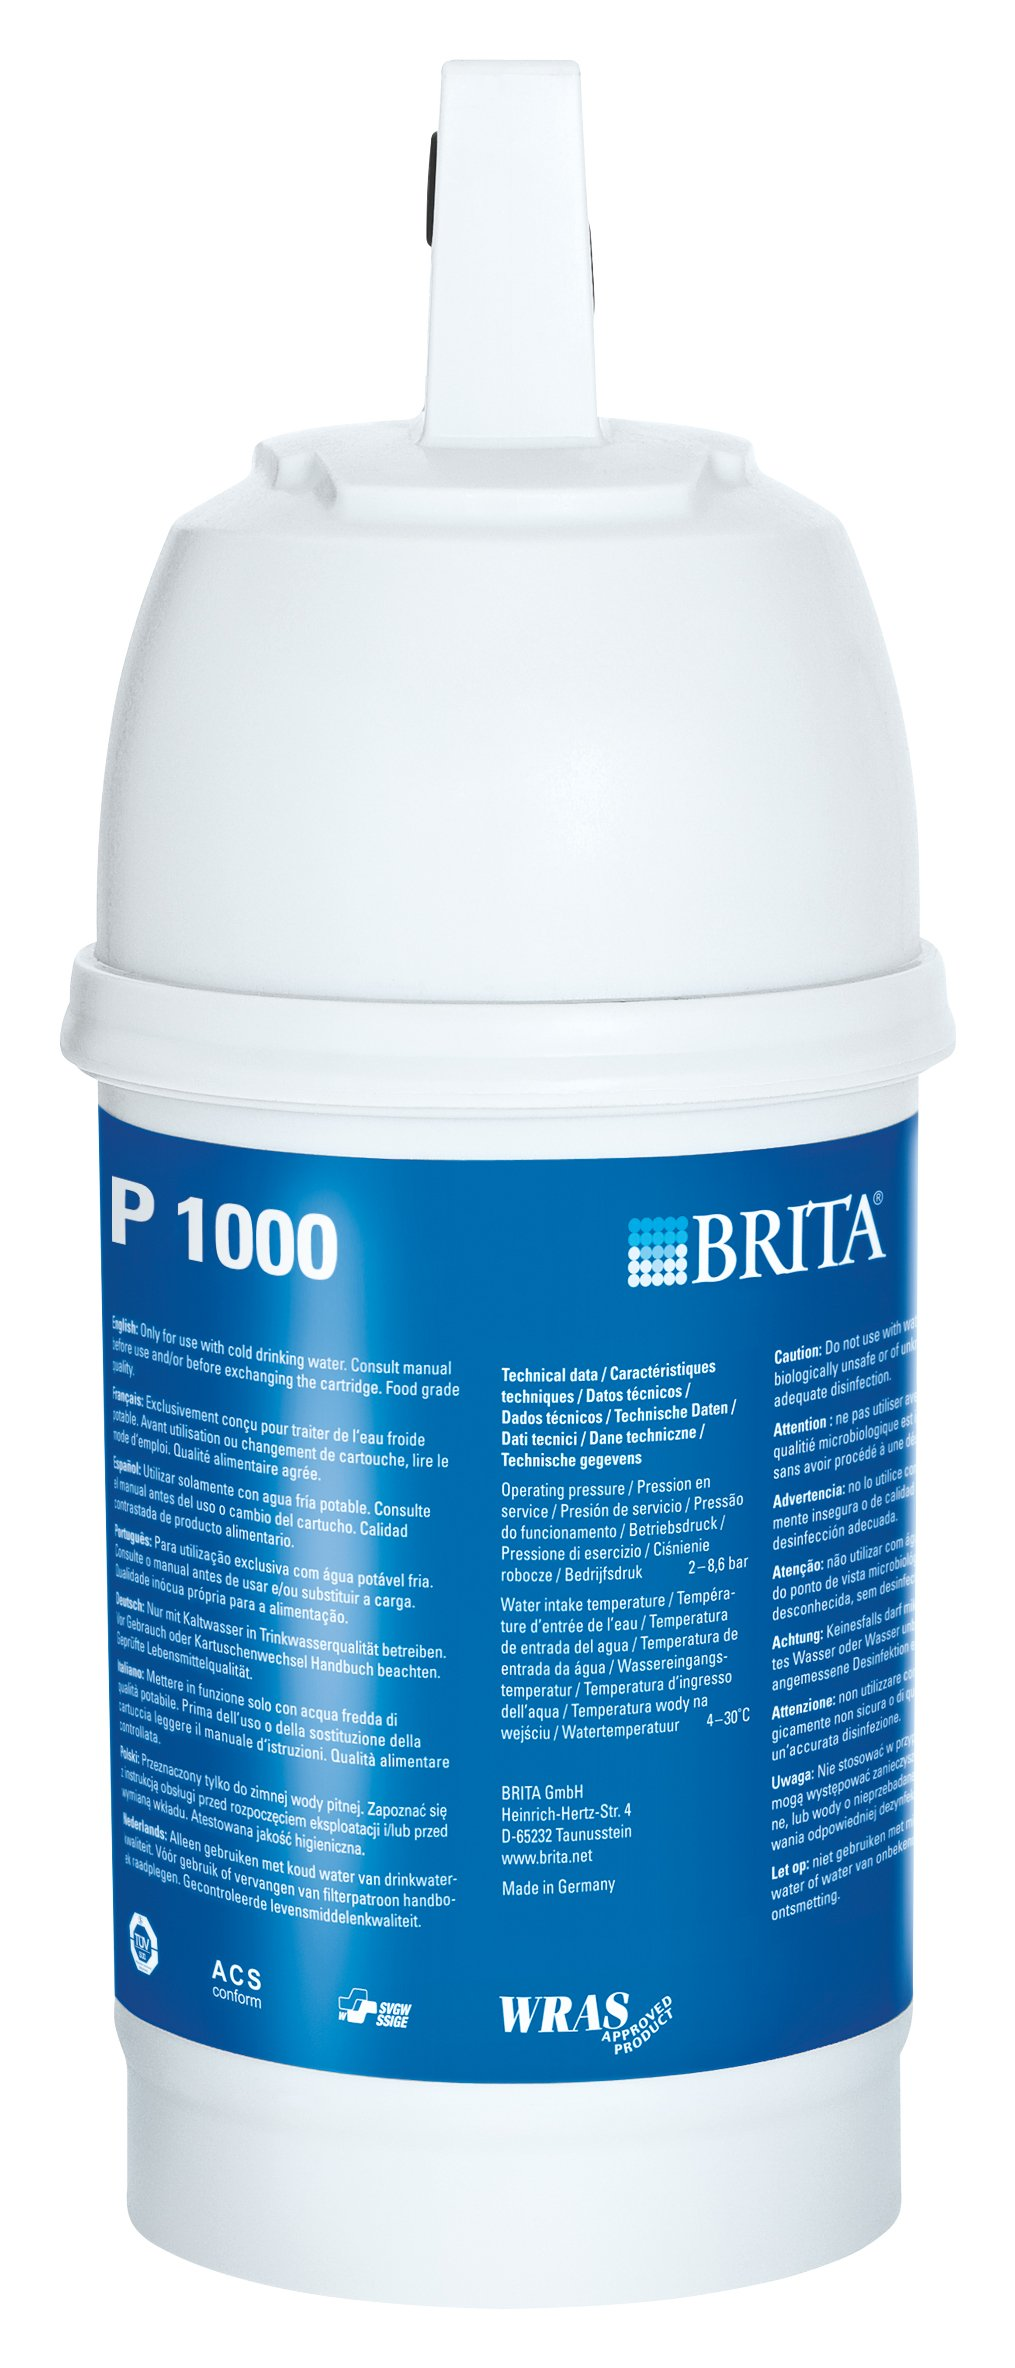 brita p1000 tap water filter cartridge. Black Bedroom Furniture Sets. Home Design Ideas